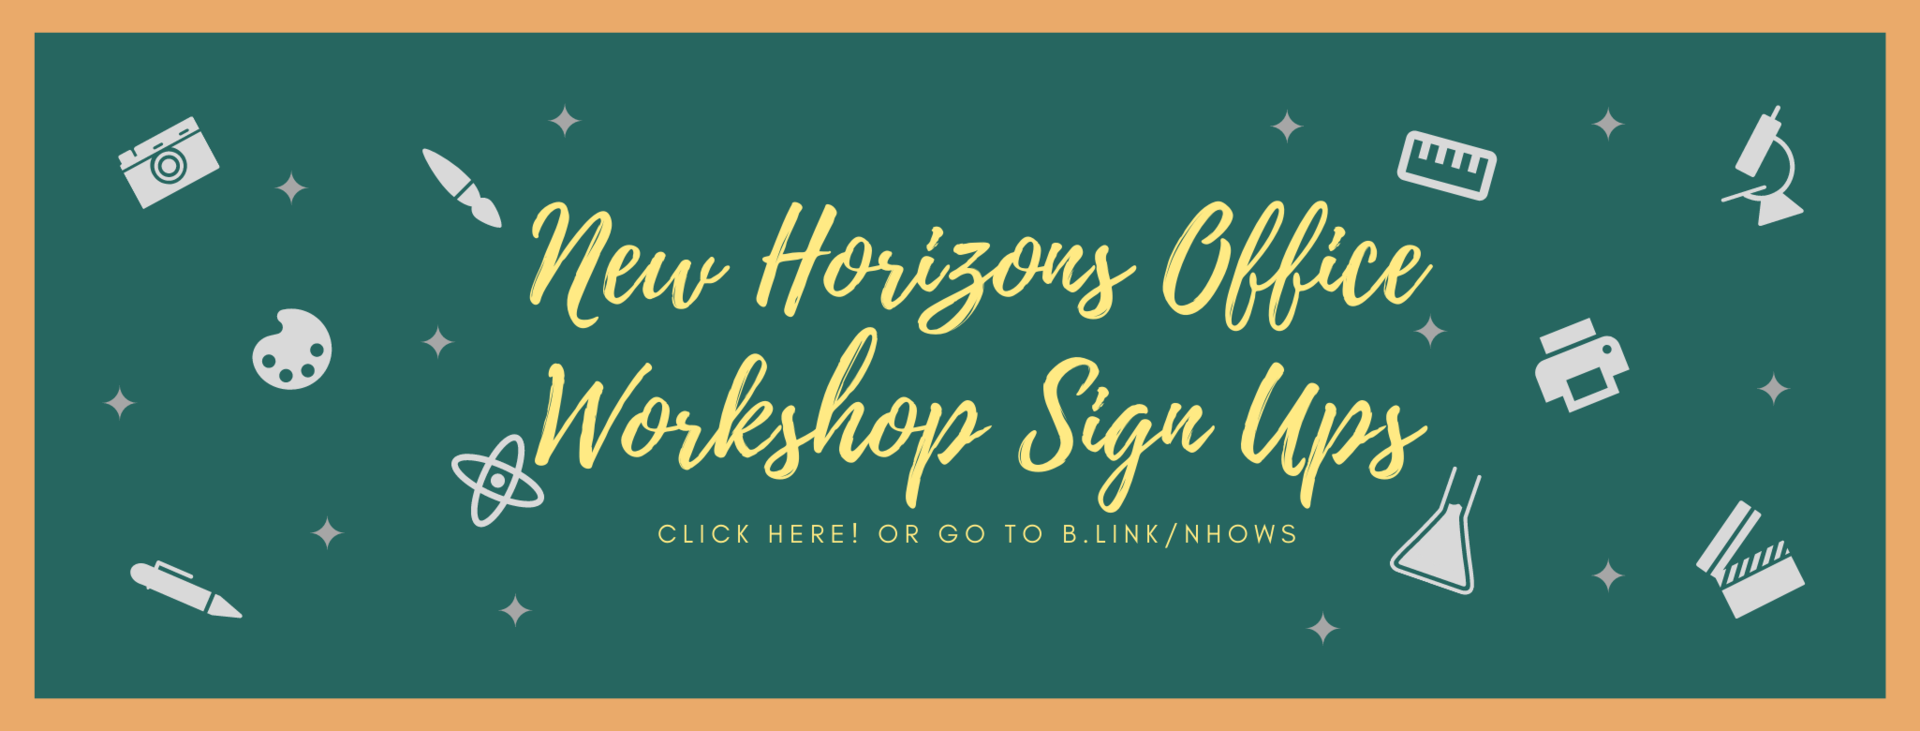 Workshop Sign Ups